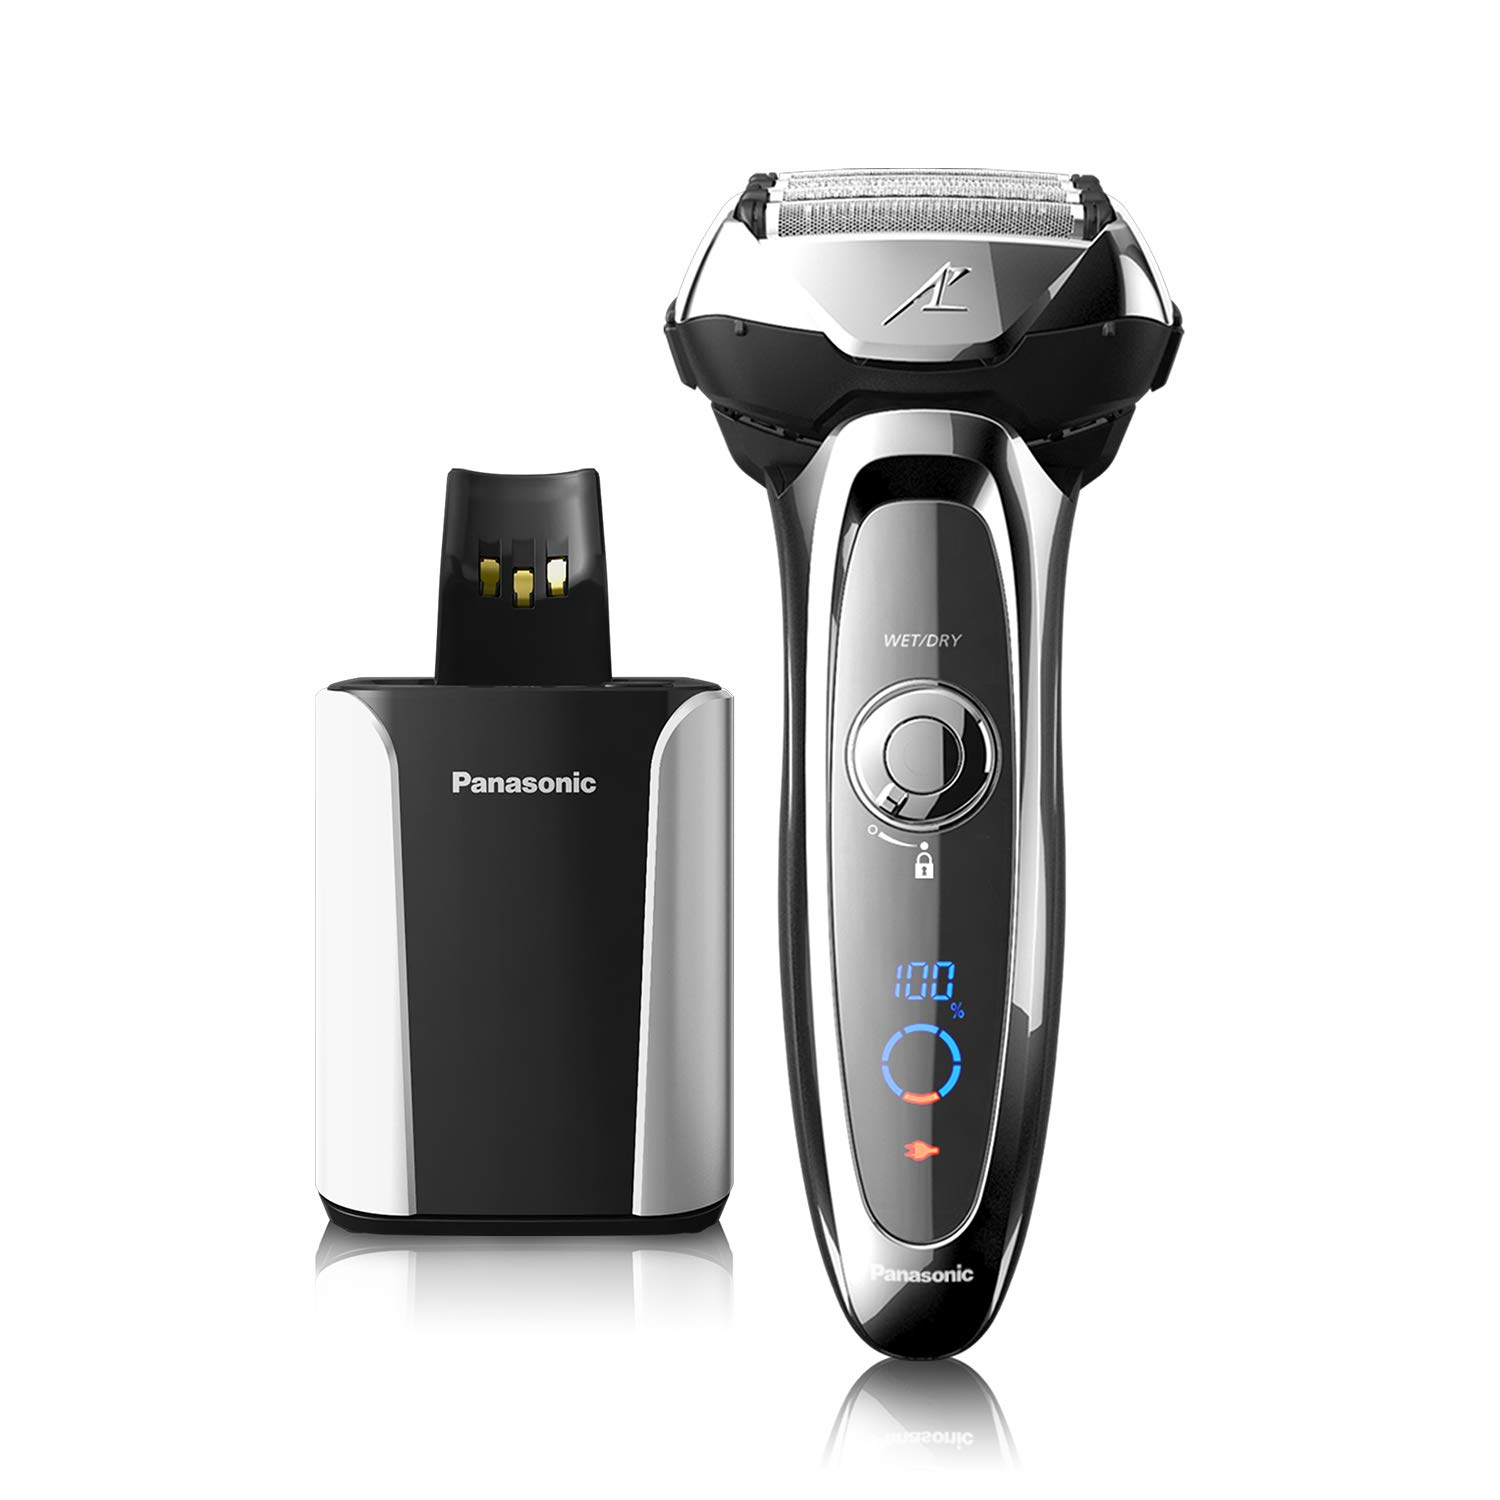 Panasonic Electric Shaver and Trimmer for Men 06302a7a8e8